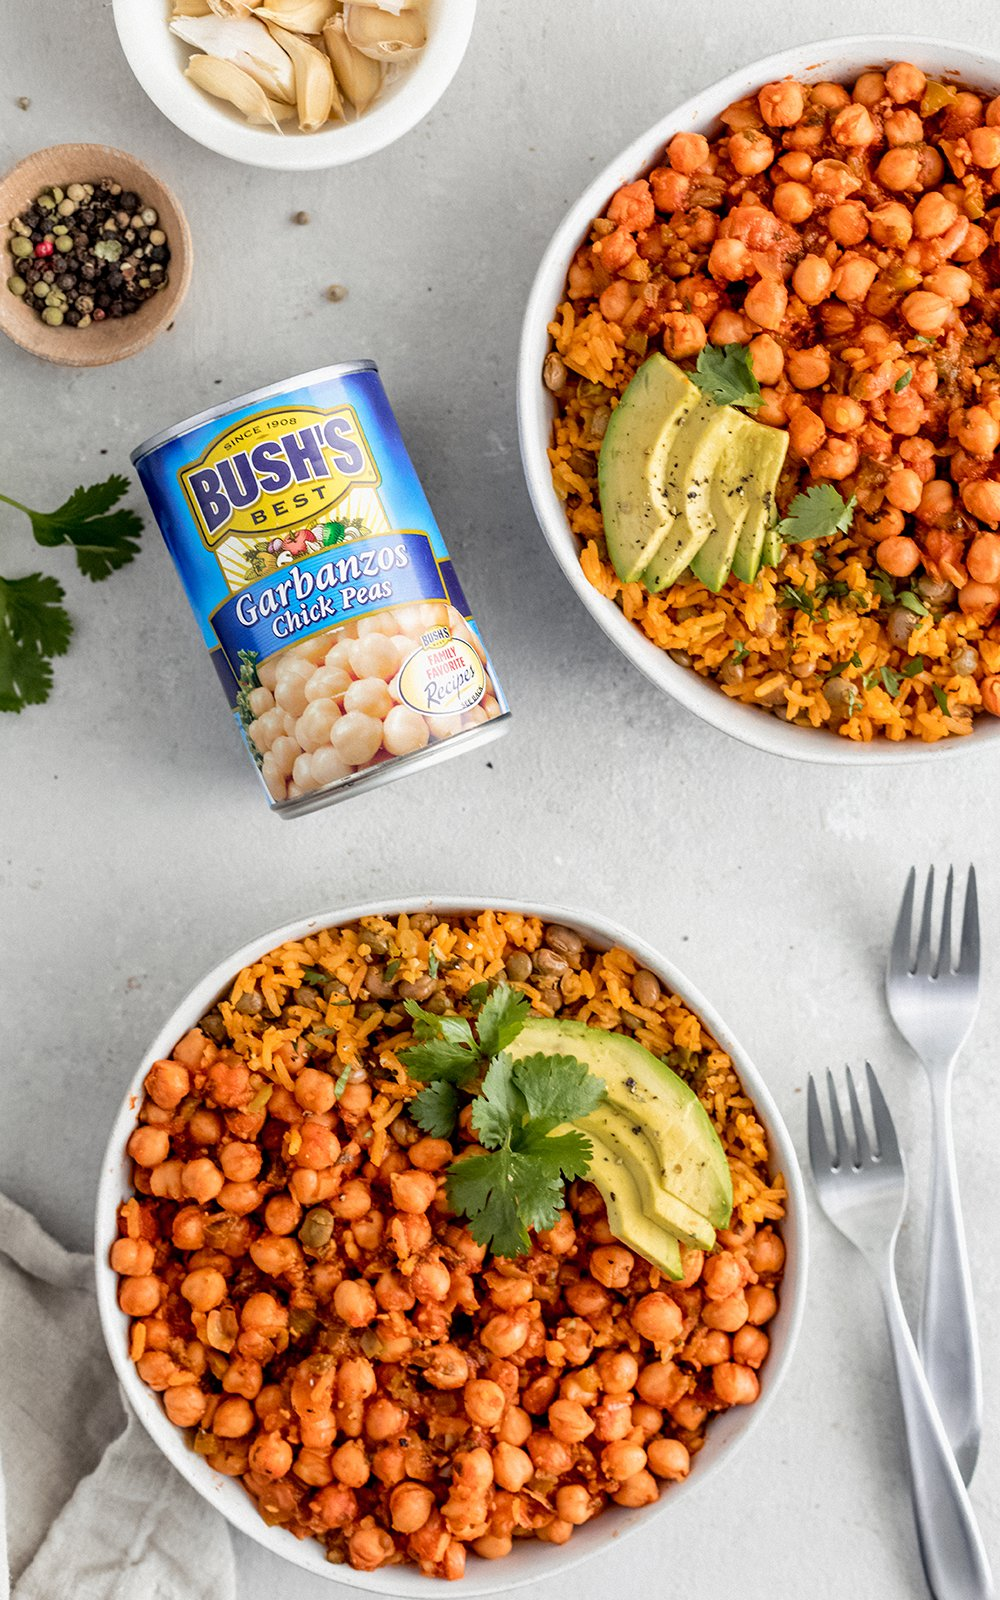 chickpeas in sofrito in two bowls next to a can of chickpeas and two forks